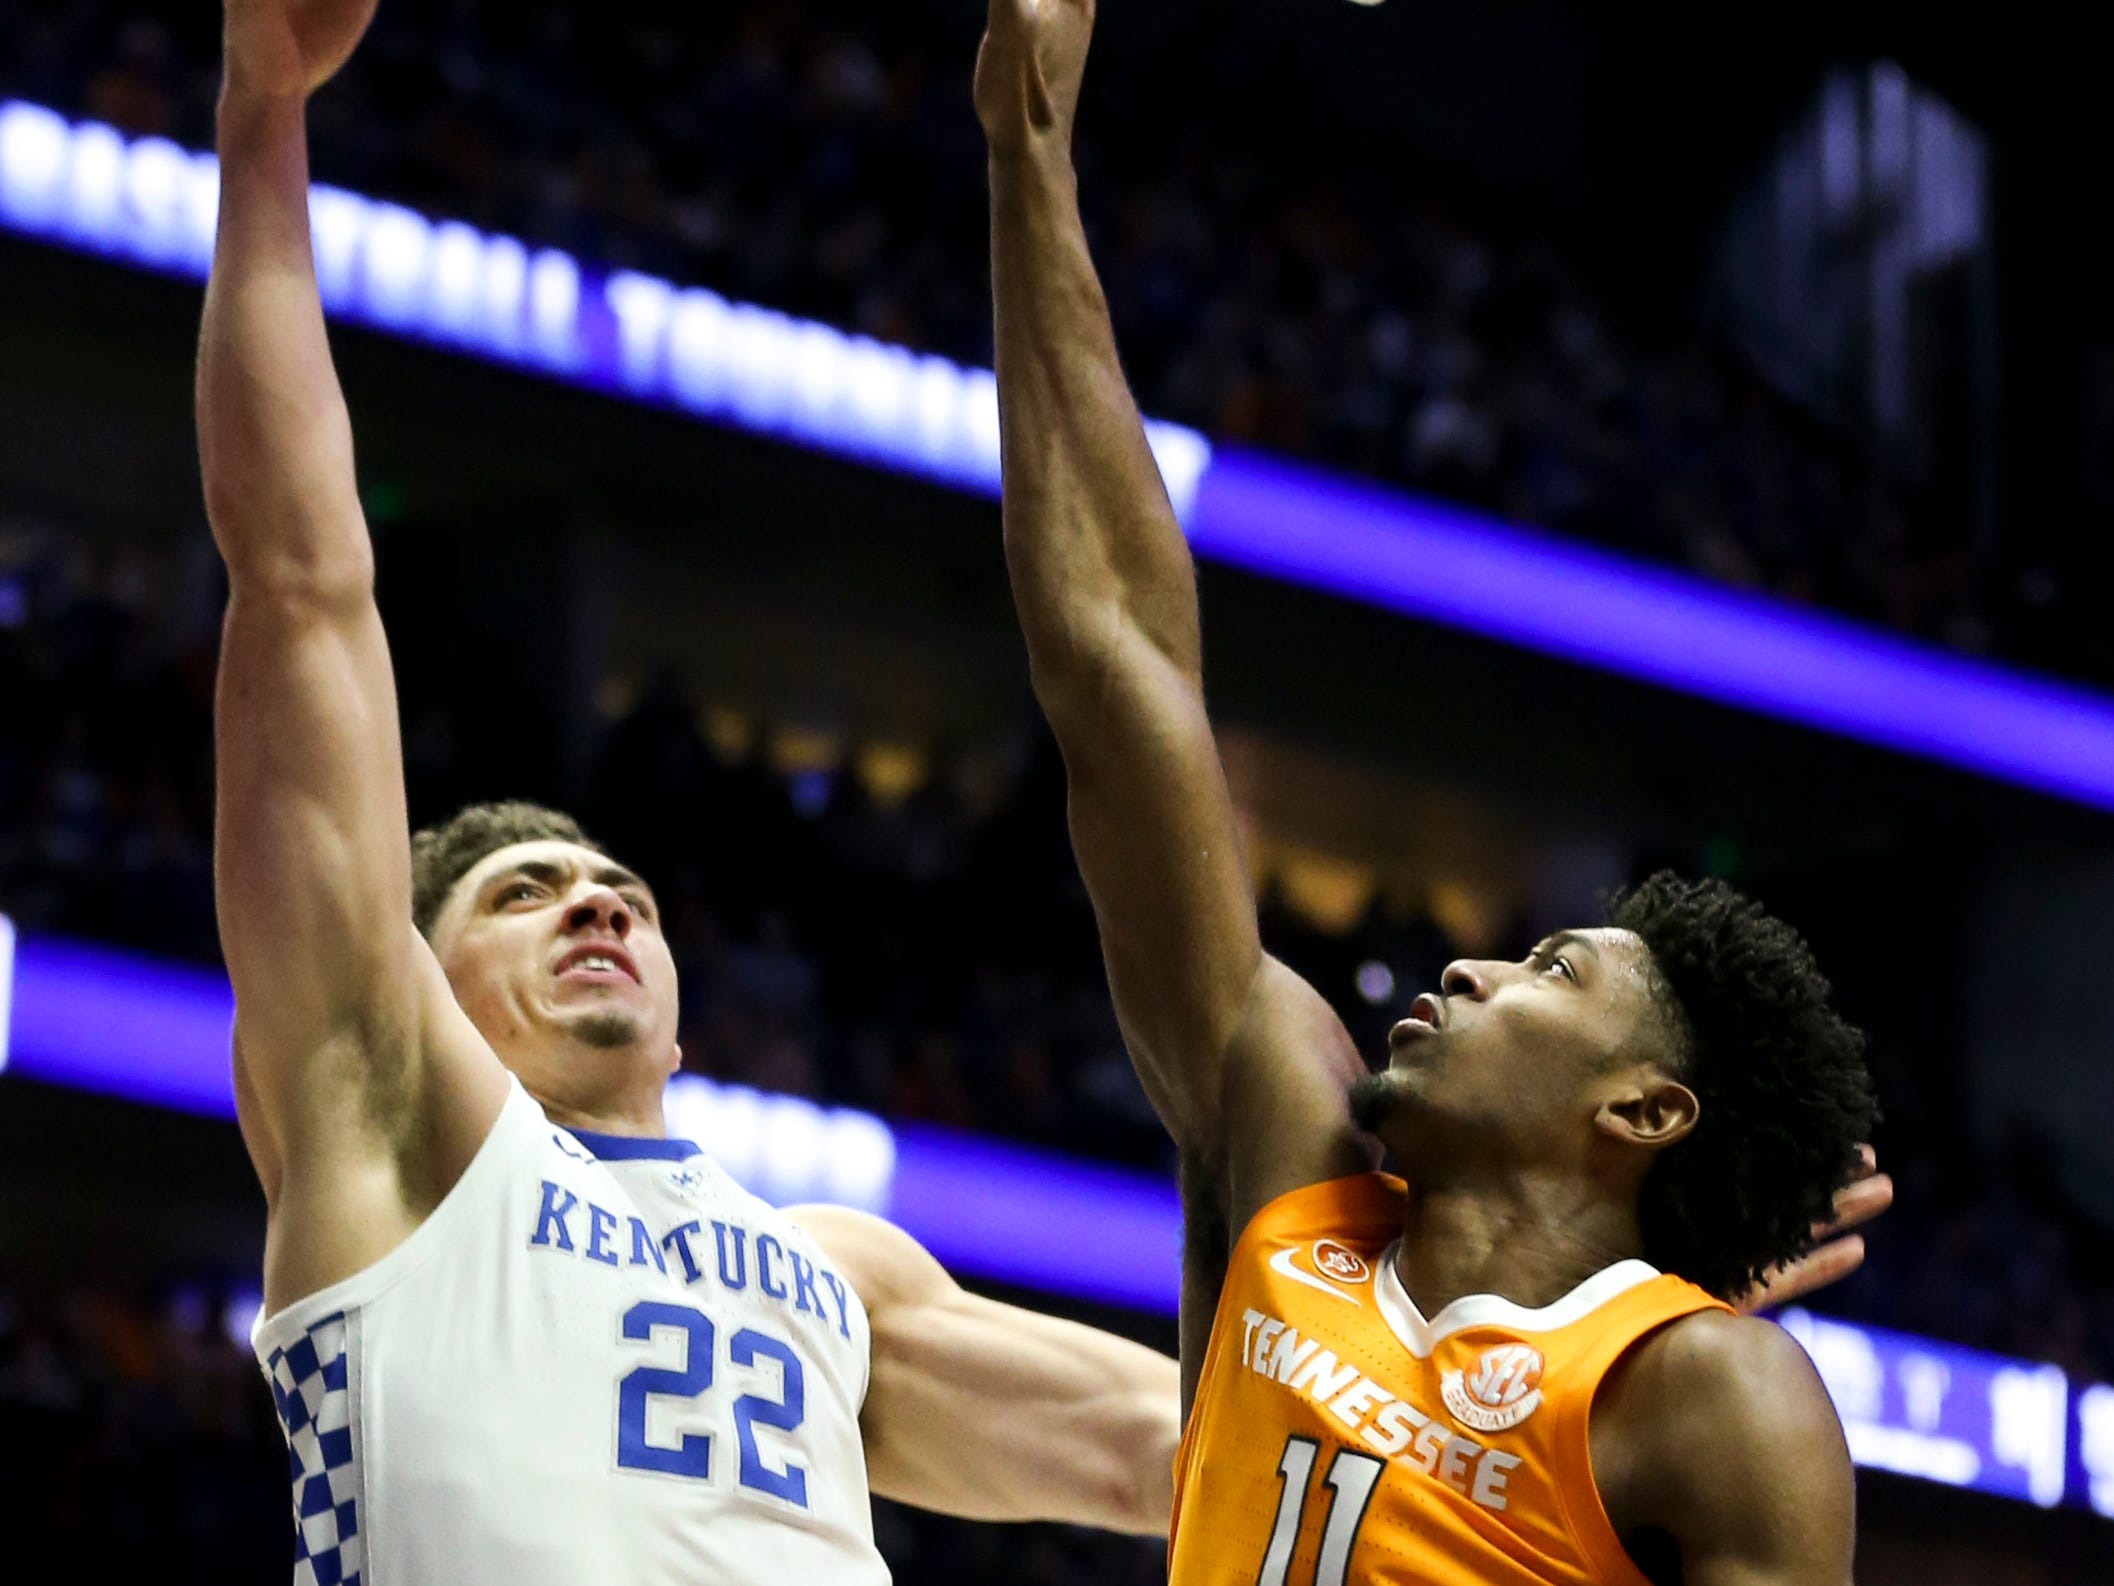 Kentucky forward Reid Travis (22) shoots against Tennessee forward Kyle Alexander (11) during the first half of the SEC Men's Basketball Tournament semifinal game at Bridgestone Arena in Nashville, Tenn., Saturday, March 16, 2019.